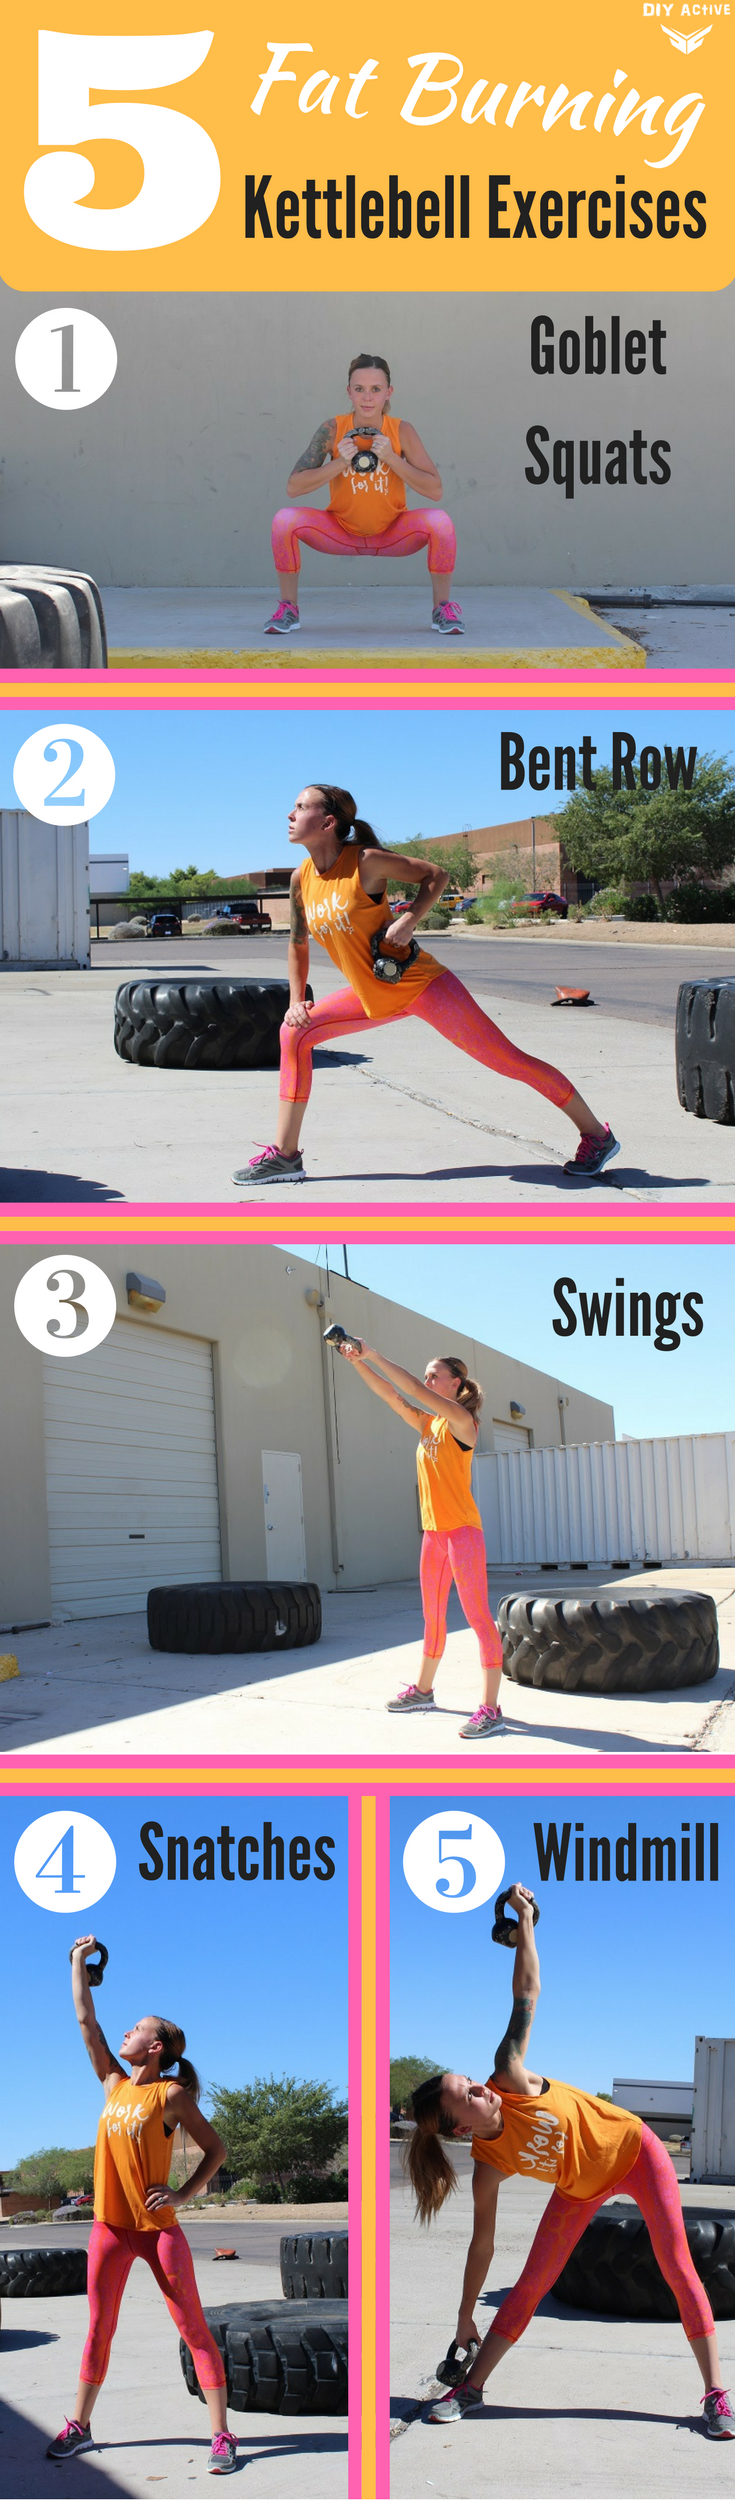 0c2c57239a0 5 Kettlebell Exercises to Add to Your Workout Routine via @DIYActiveHQ  #fitness #kettlebell #workout